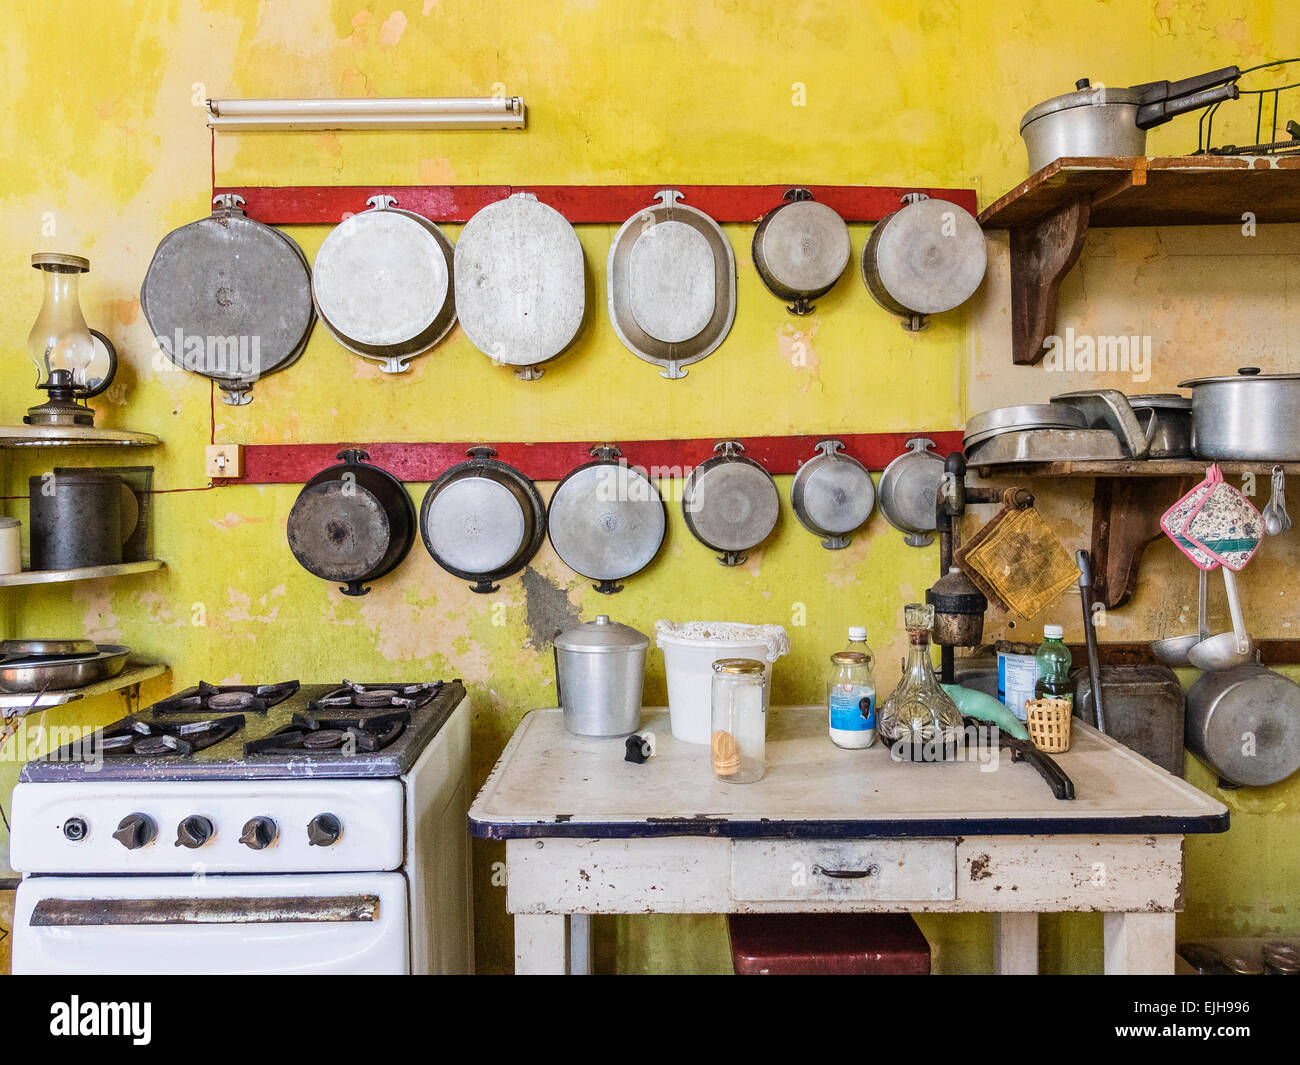 Hanging Pots And Pans On Wall pots and pans hanging stock photos & pots and pans hanging stock